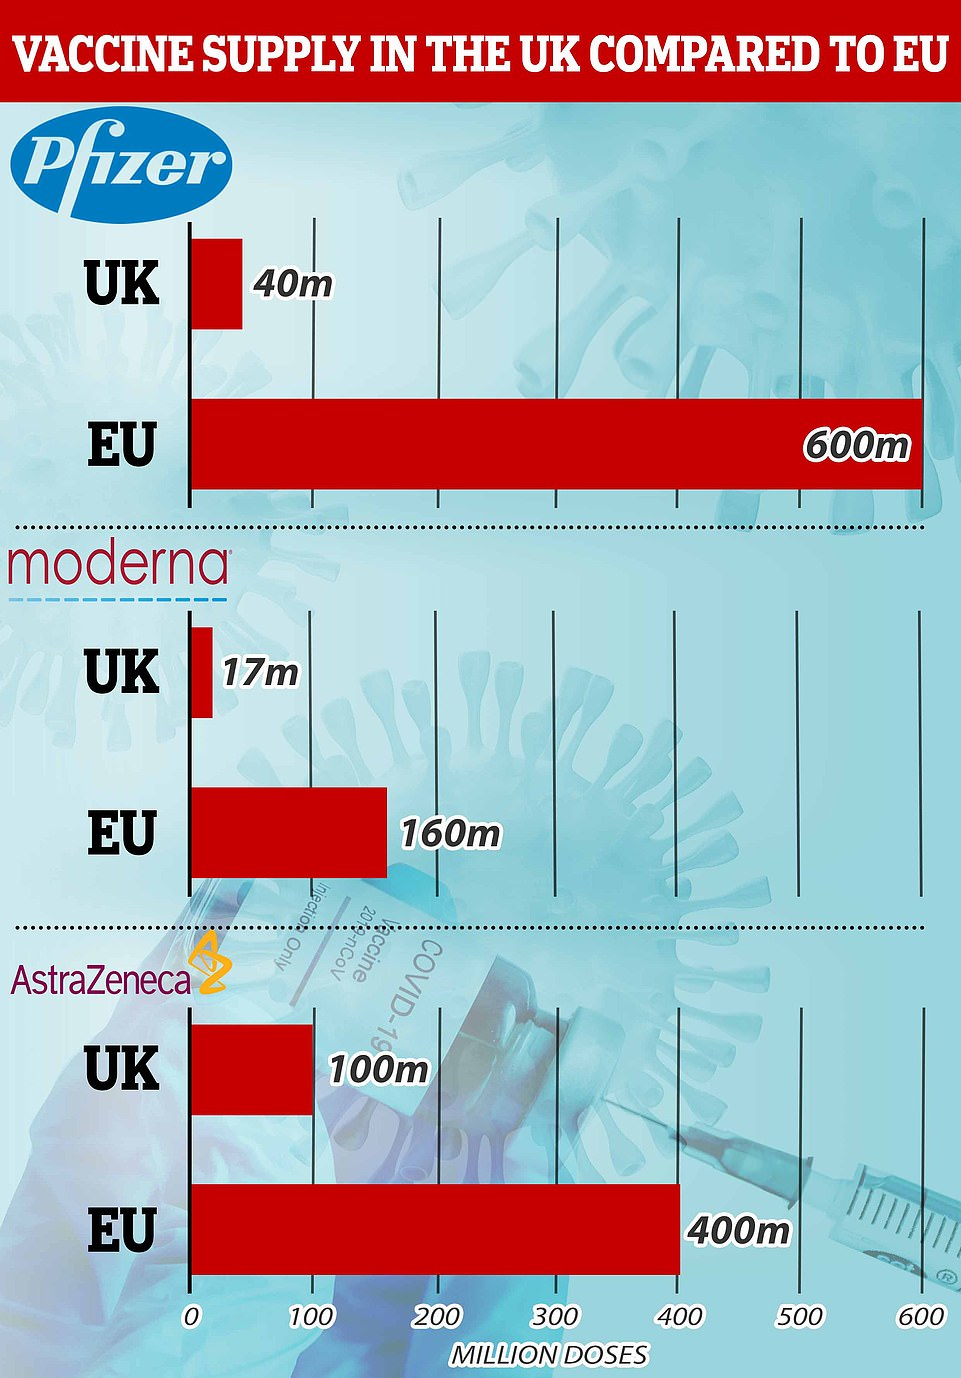 These set of graphs show the number of vaccines ordered by the UK and the EU. The EU has also ordered a number of other vaccines, including 300million Sanofi-GSK doses and 405million CureVac doses